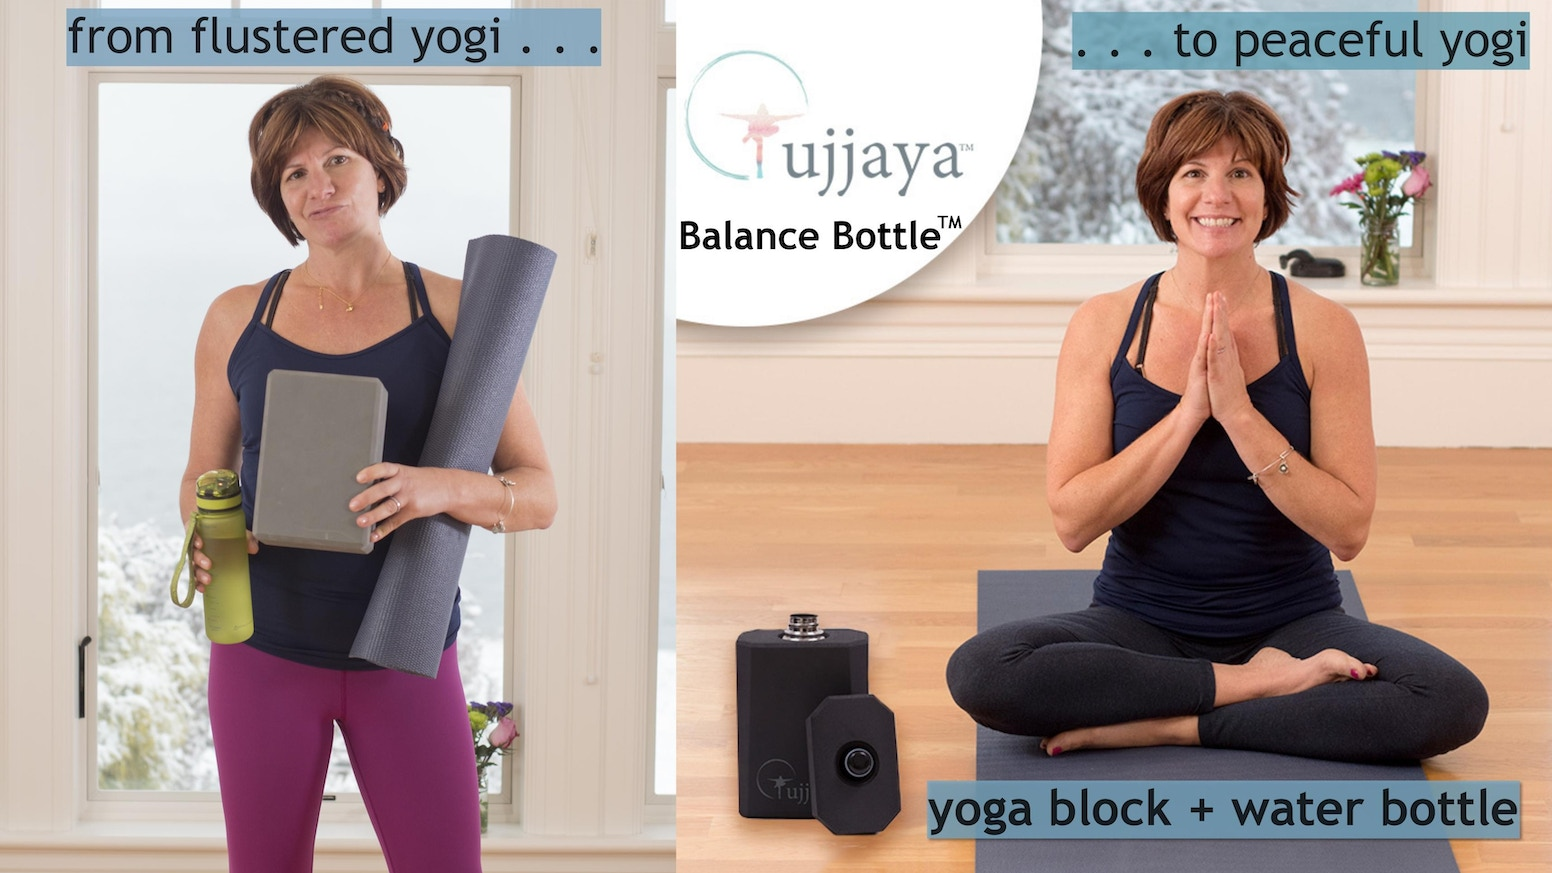 Simplify & support your yoga practice with this combination yoga block and water bottle.